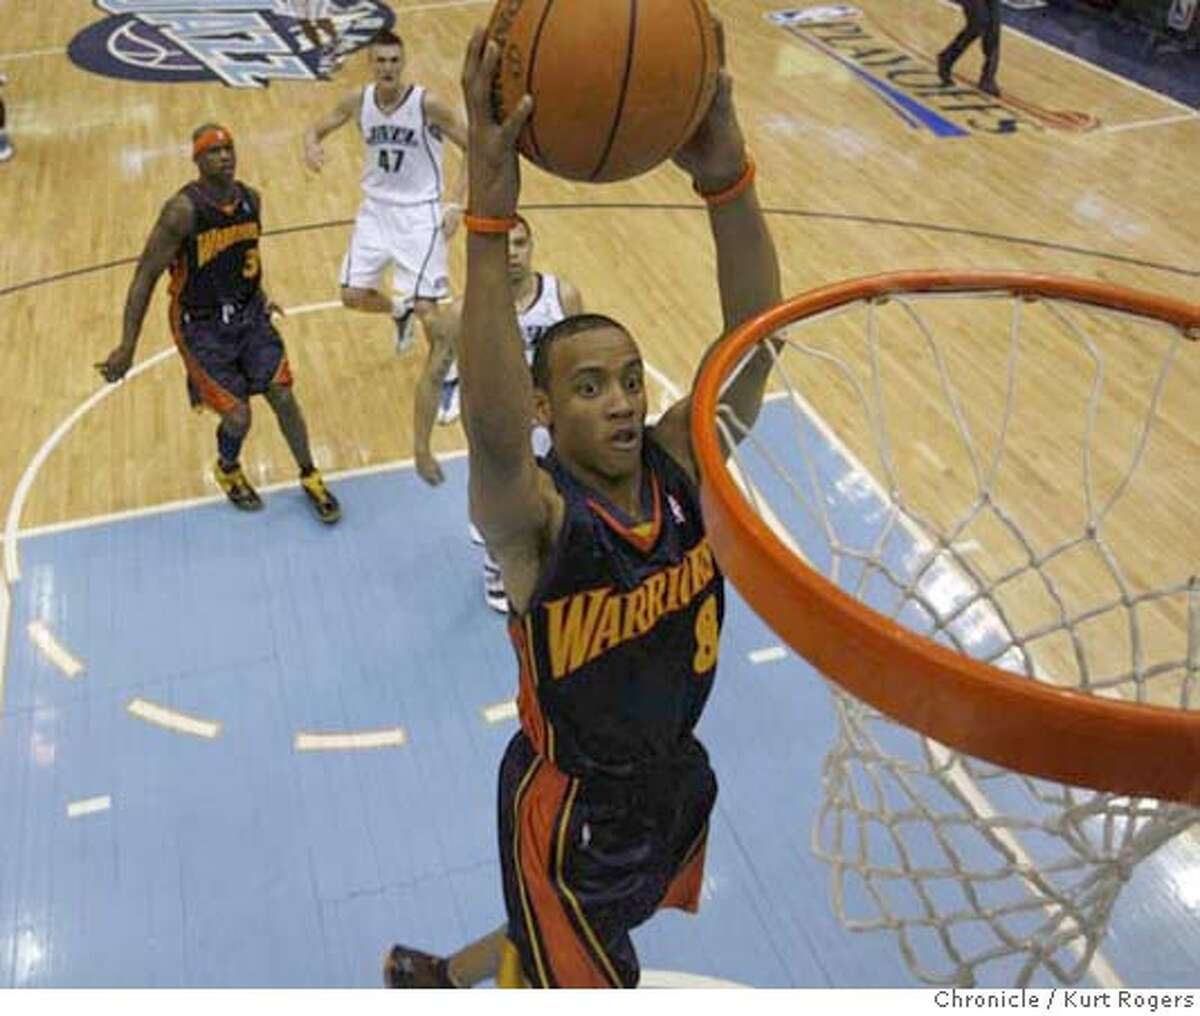 2007 NBA PLAYOFFFS-Western Conference Golden State Warriors' Monta Ellis up for two in the first half of play. Semifinals UTAH JAZZ vs GOLDEN STATE WARRIORS Series Game #5 EnergySolutions Arena . TUESDAY, MAY 15, 2007 KURT ROGERS SALT LAKE CITY SFC KURT ROGERS/THE CHRONICLE _O1N0242.JPG Ran on: 06-24-2007 Don Nelson Ran on: 06-24-2007 Don Nelson MANDATORY CREDIT FOR PHOTOG AND SF CHRONICLE / NO SALES-MAGS OUT